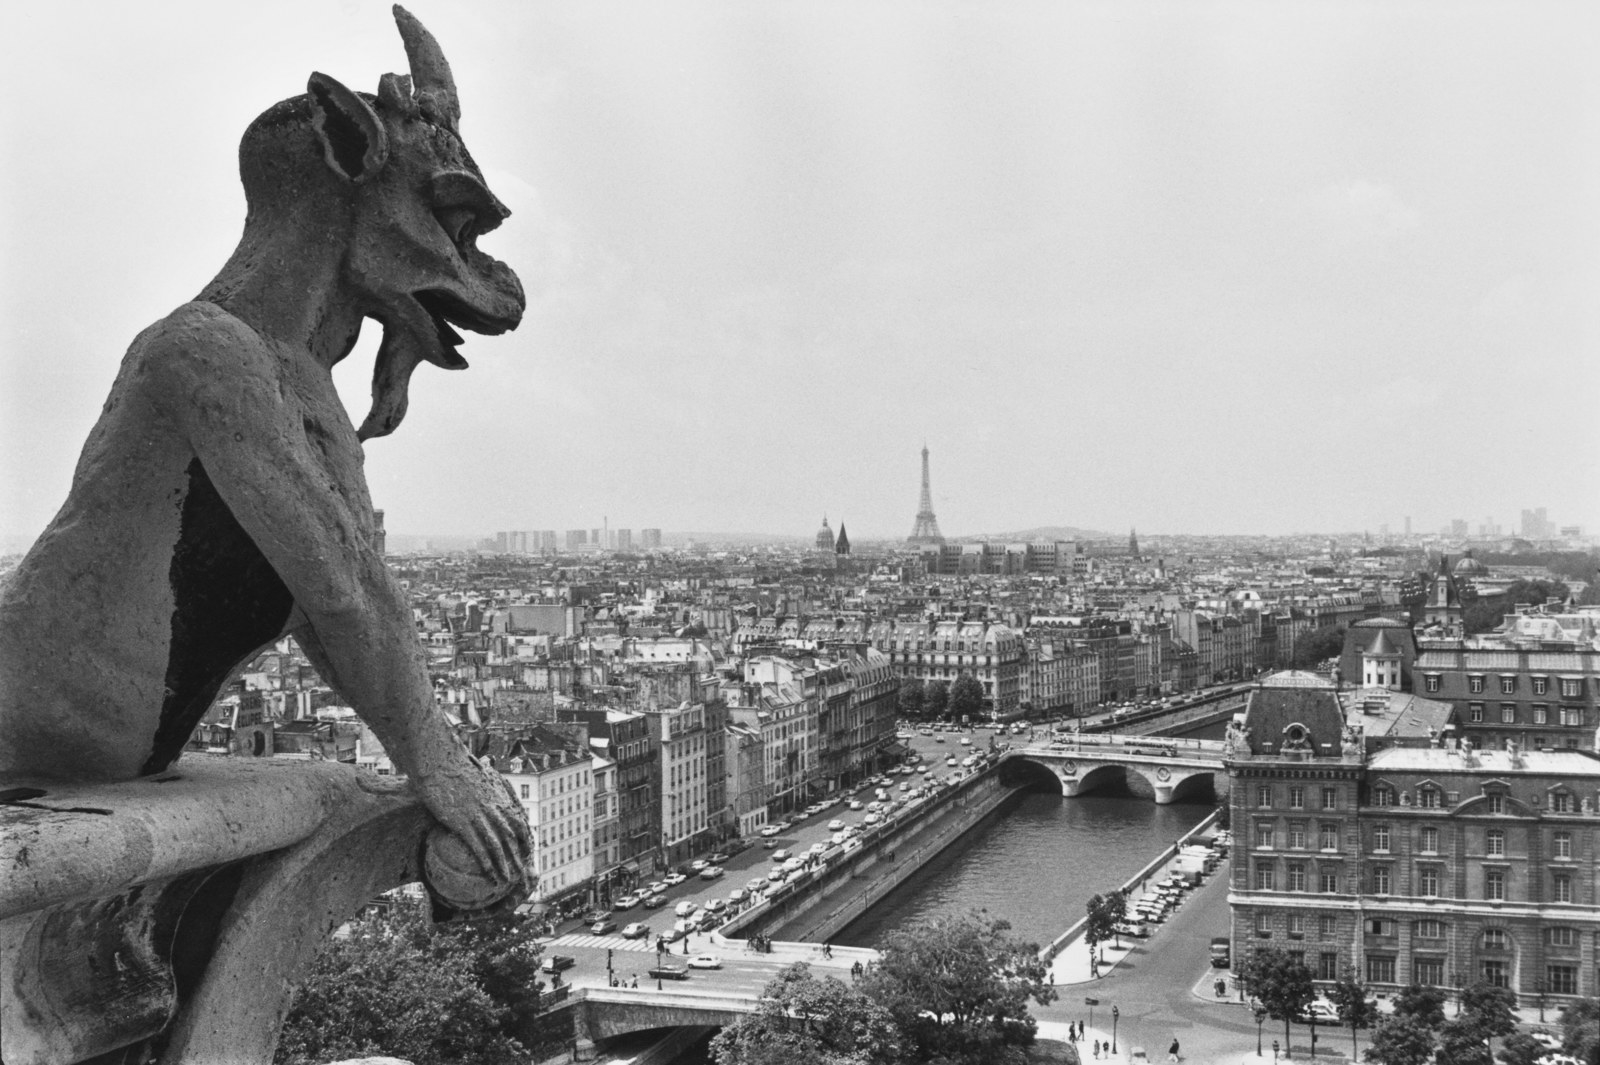 A gargoyle on top of the Notre Dame Cathedral photographed in July 1980.